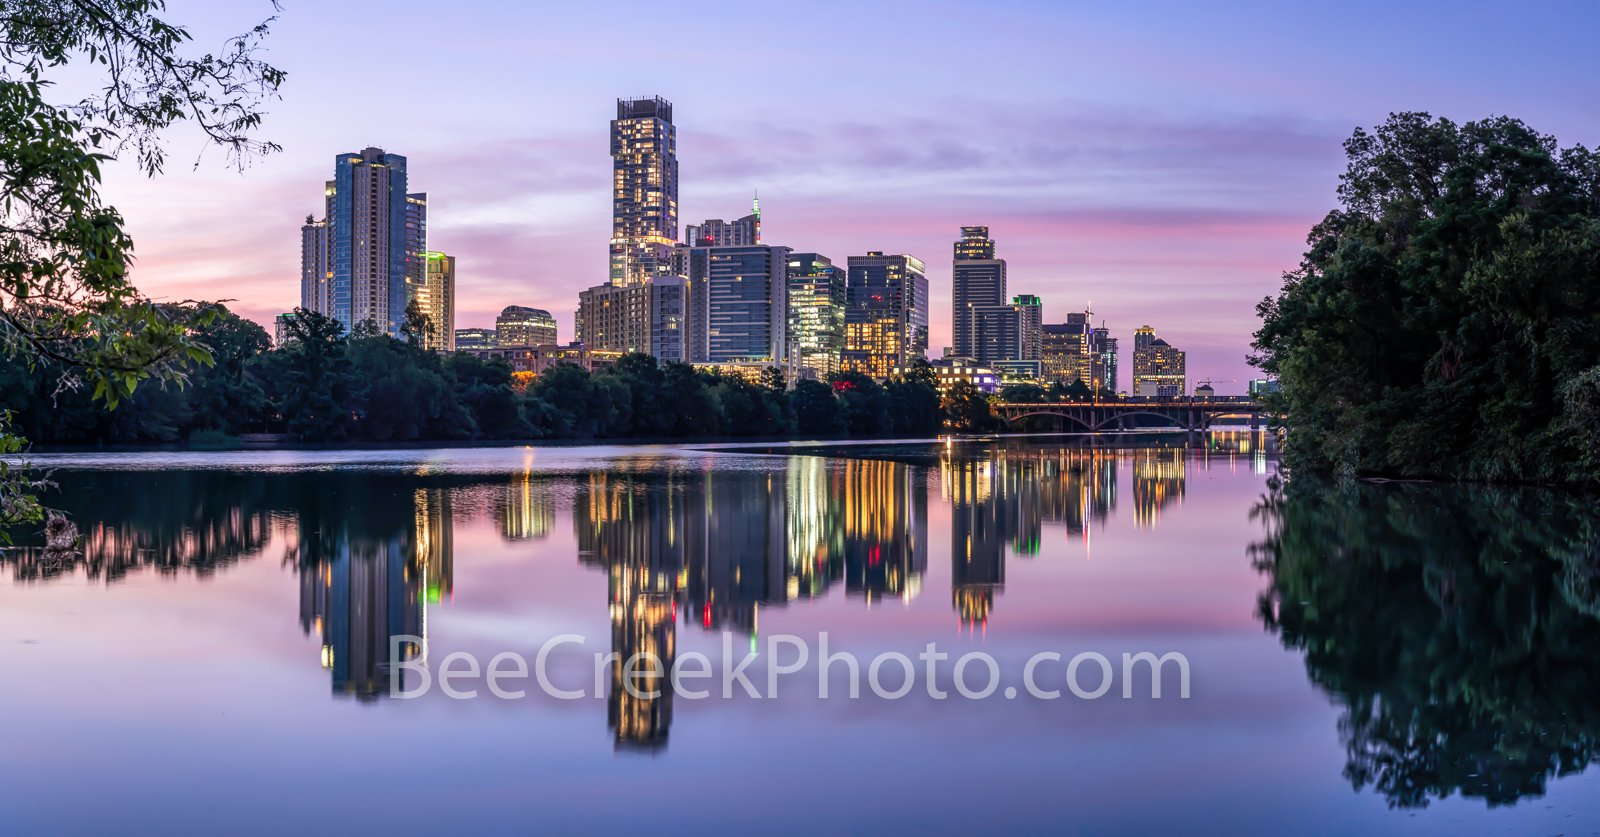 Austin Skyline, austin lou neff point, lou neff point, sunrise, reflections, pano, panorama, Independent, austonian, lamaar bridge, pinks, violet,  purple, violet crown, architecture, beecreekphoto, c